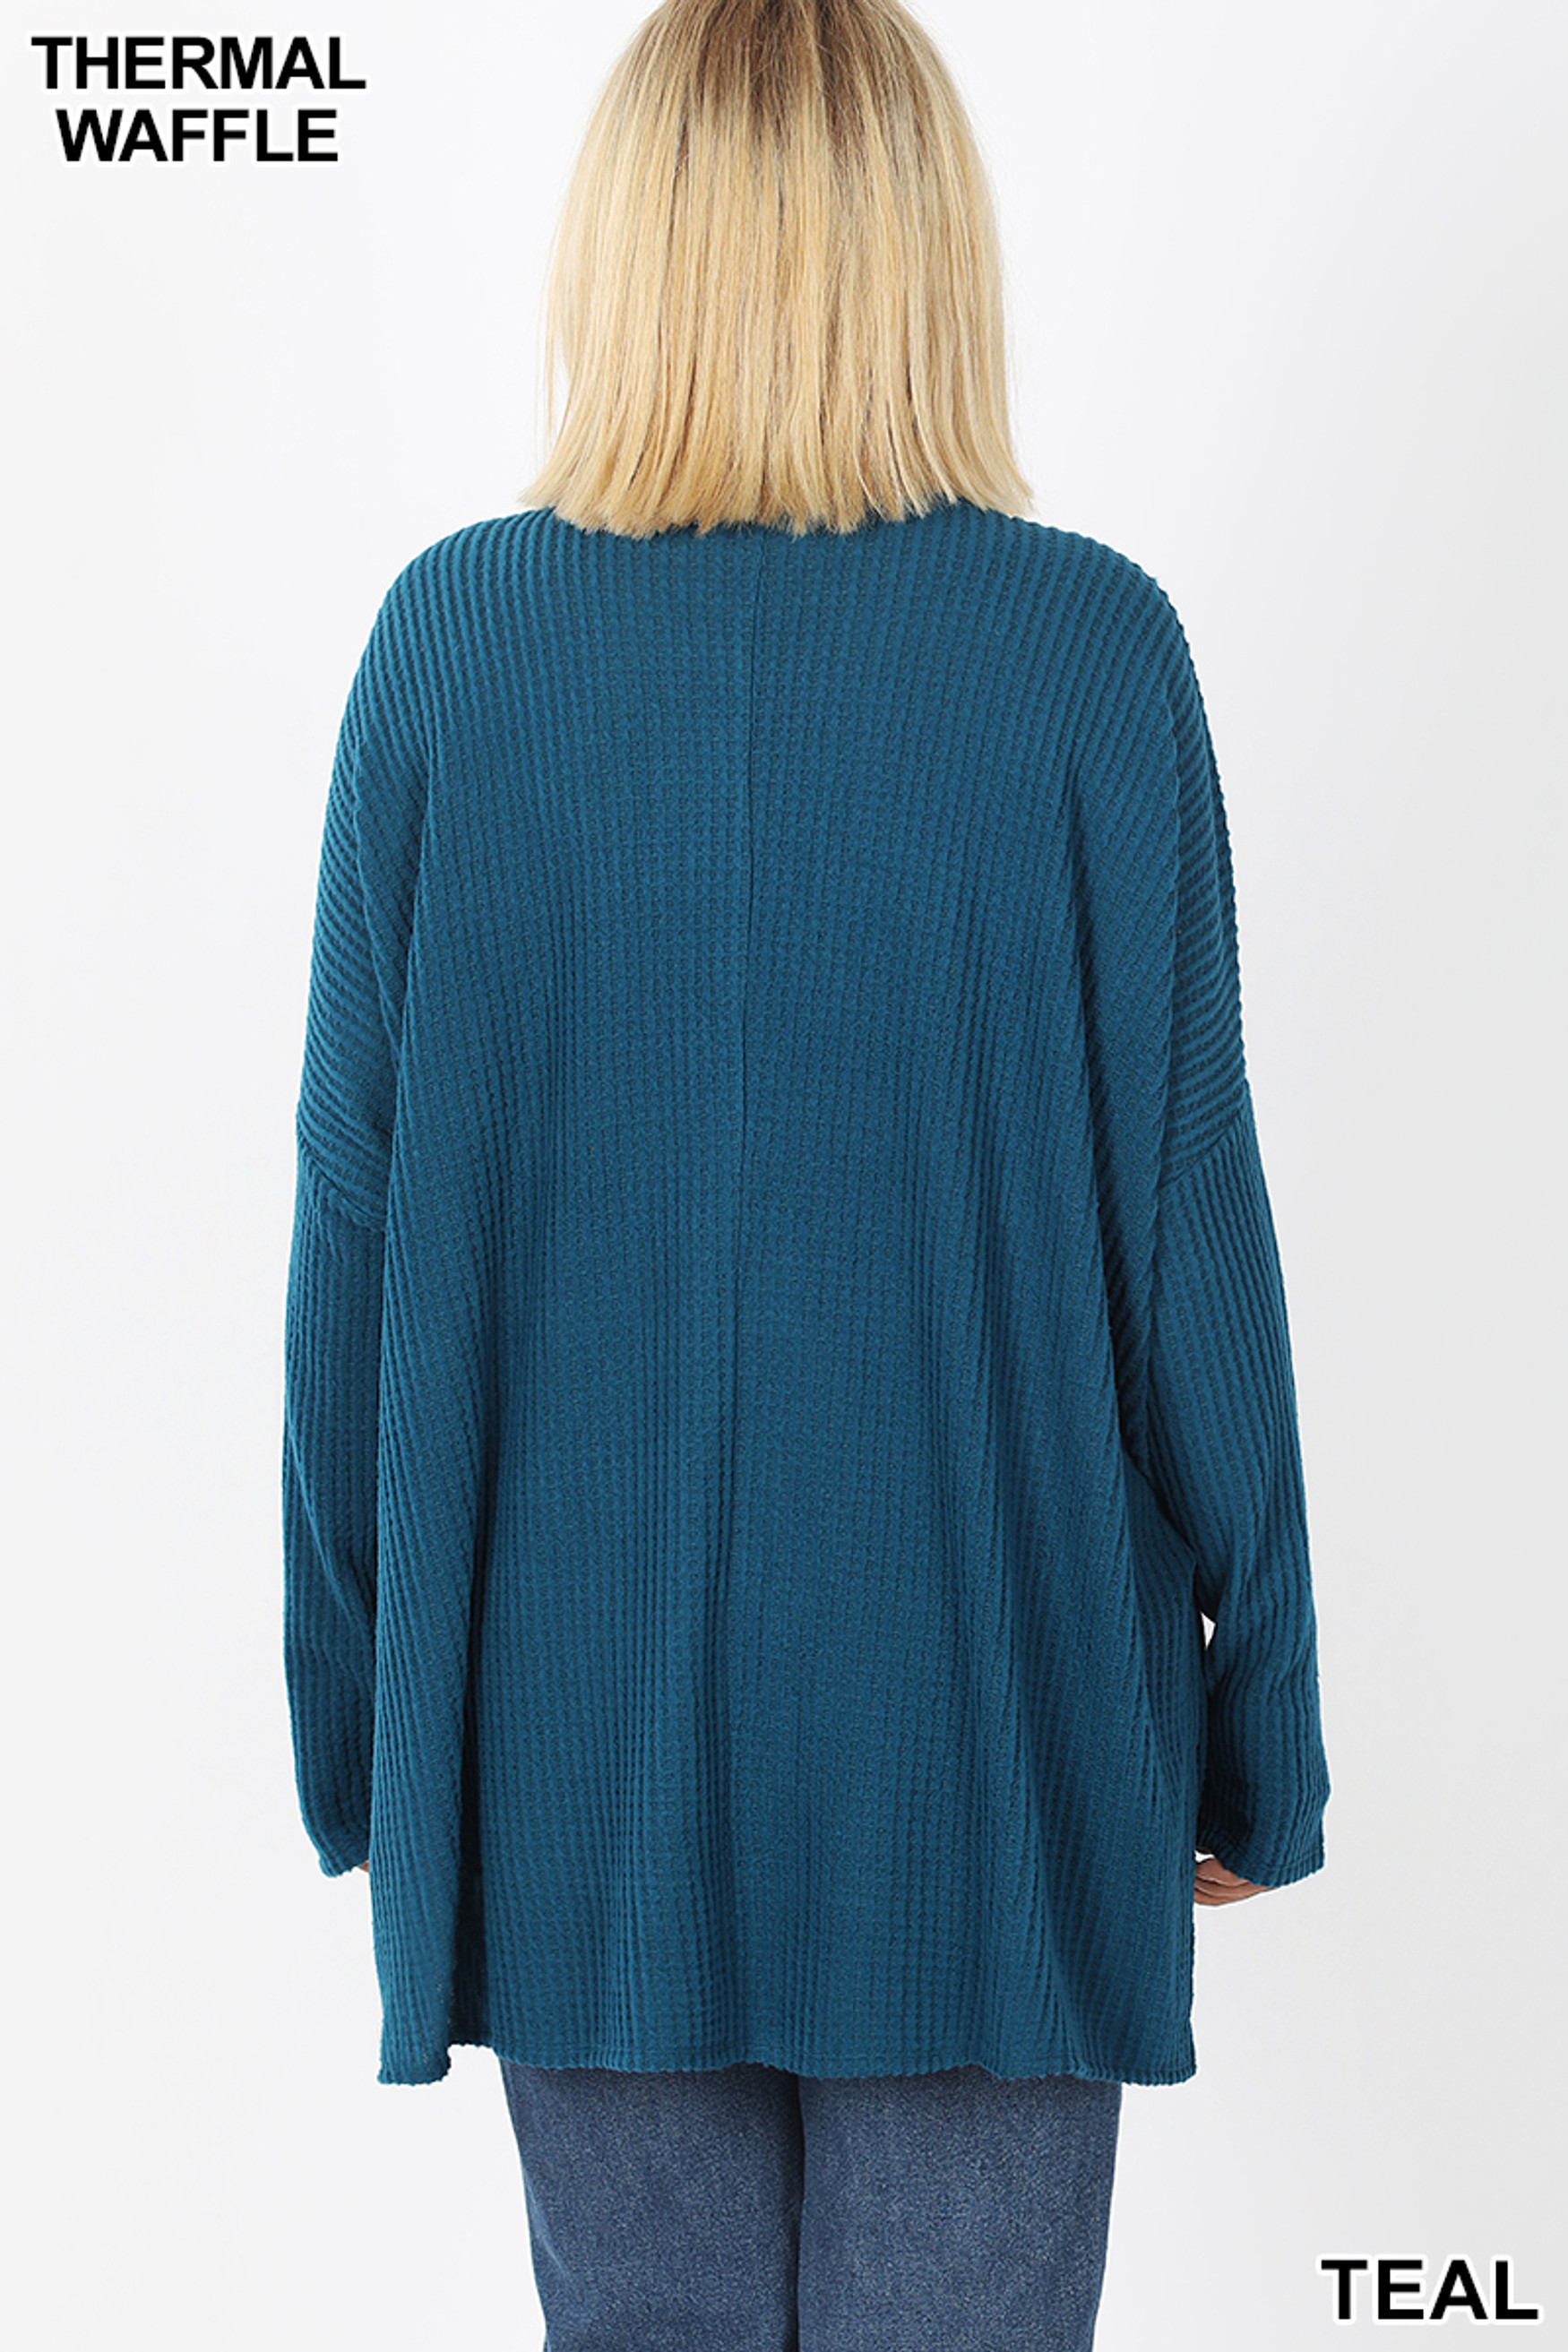 Back view of Teal Brushed Thermal Waffle Knit Round Neck Hi-Low Sweater